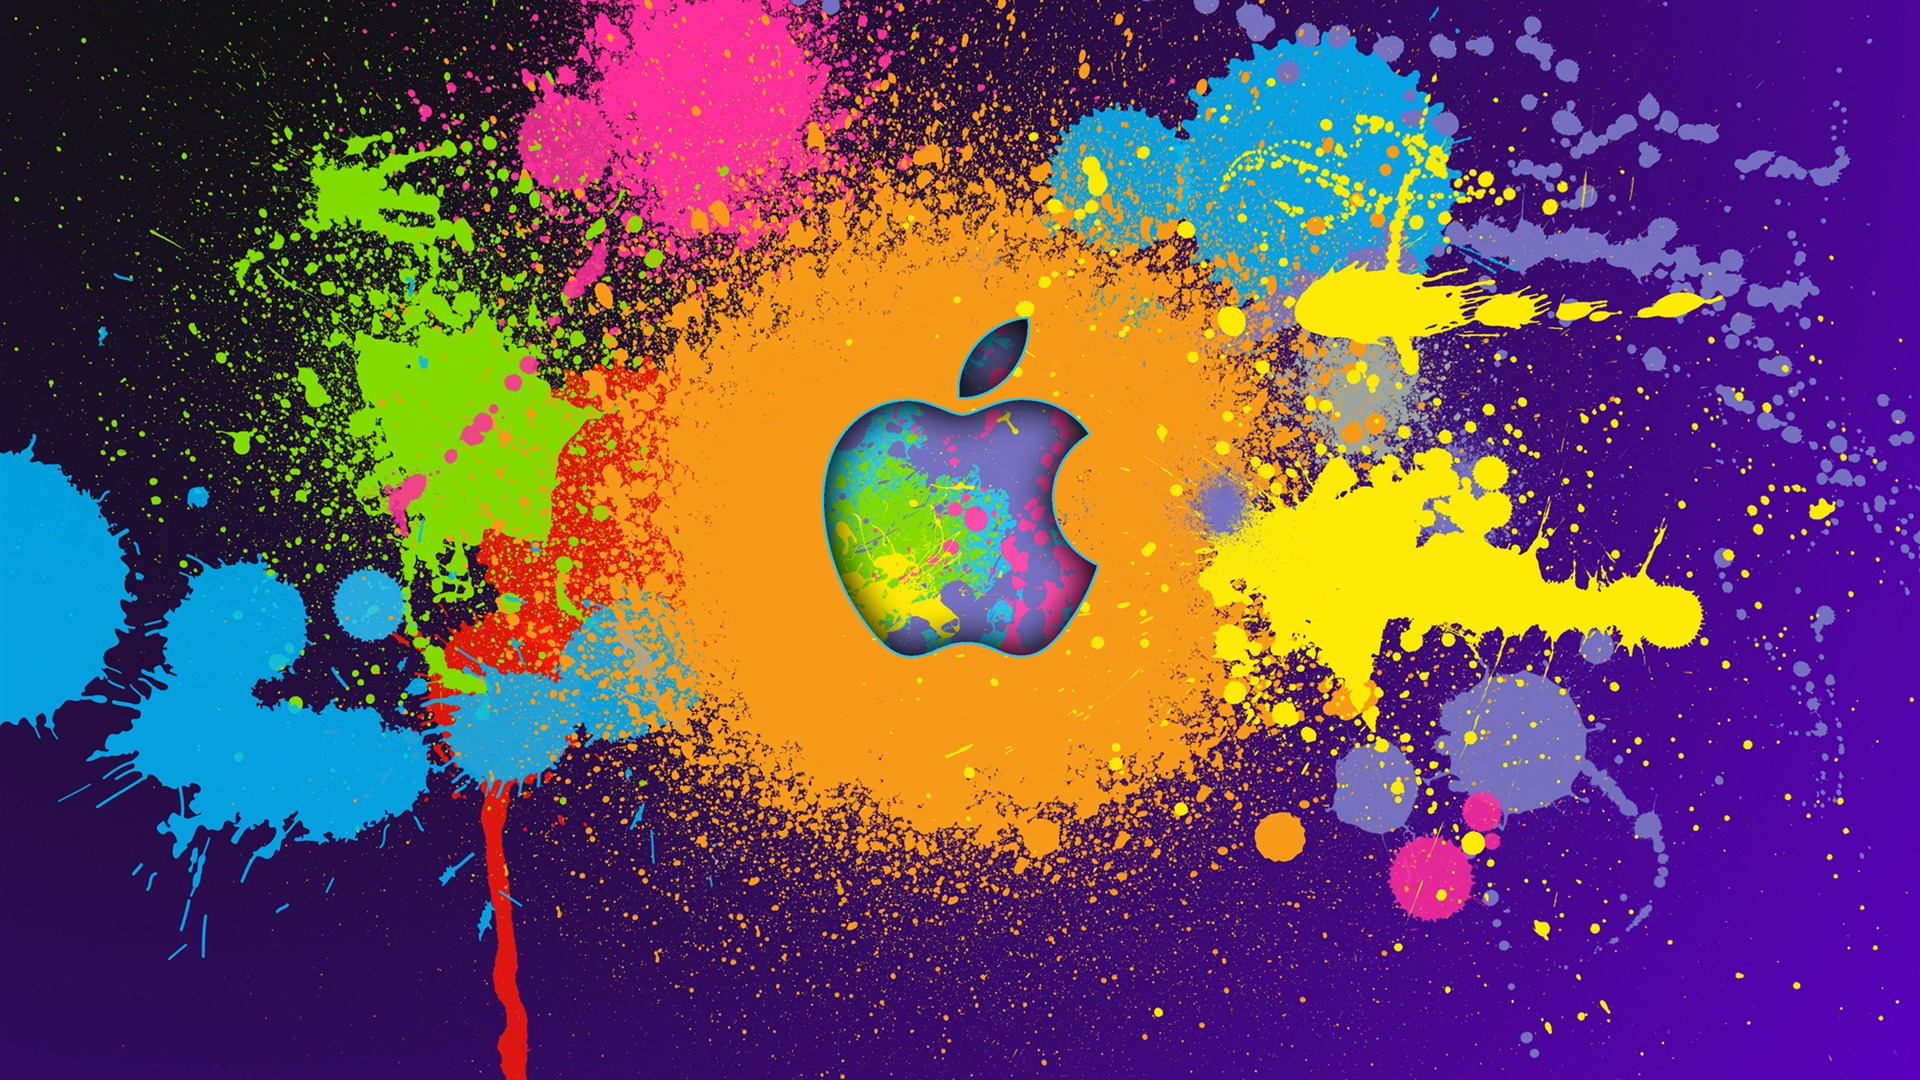 Colorful Apple Logo Brand Selection Wallpaper